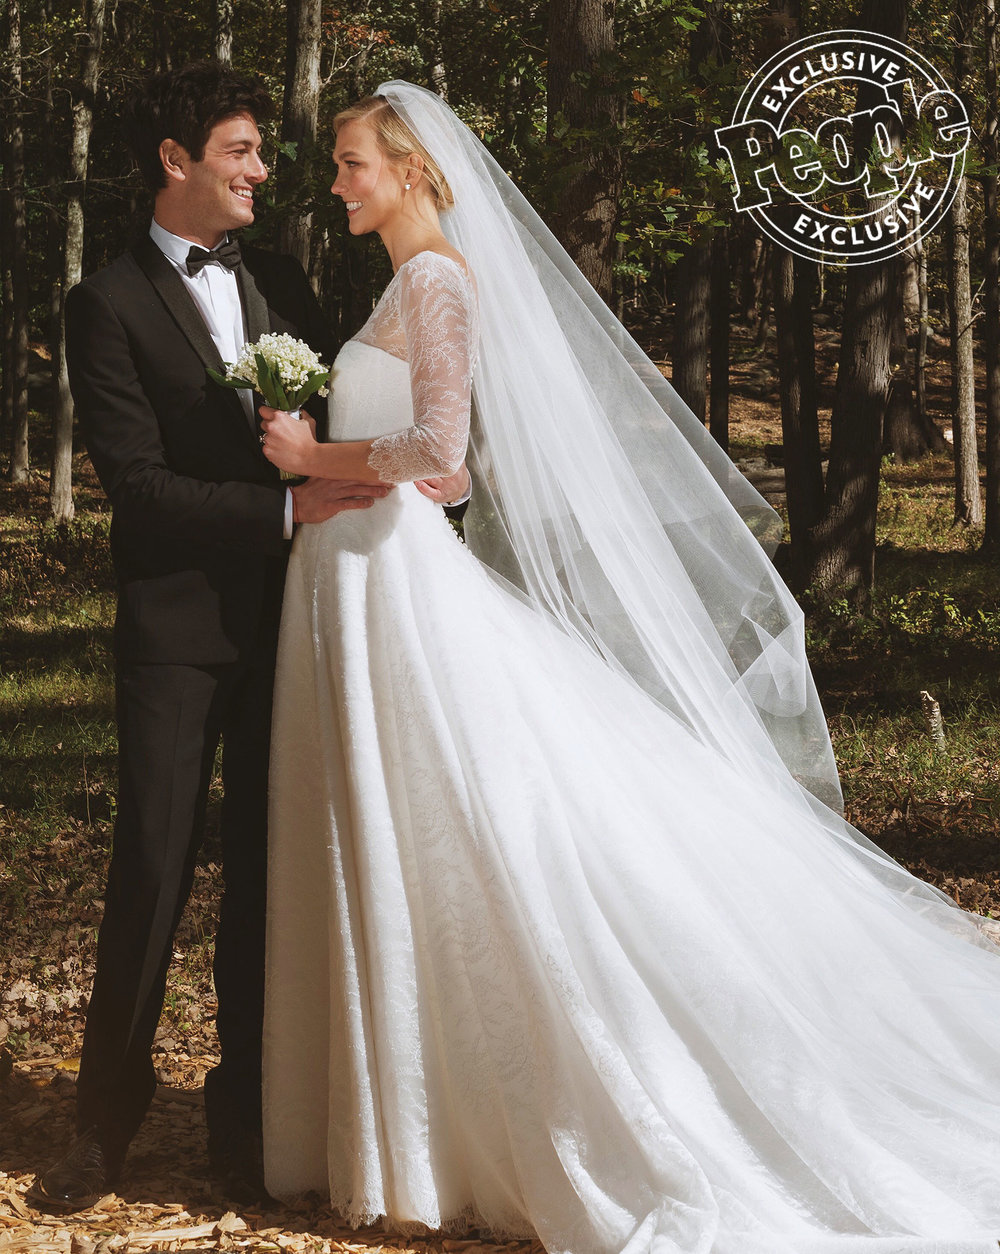 Karlie kloss wore a lace gown wedding gown by dior on her 2018 celebrity wedding